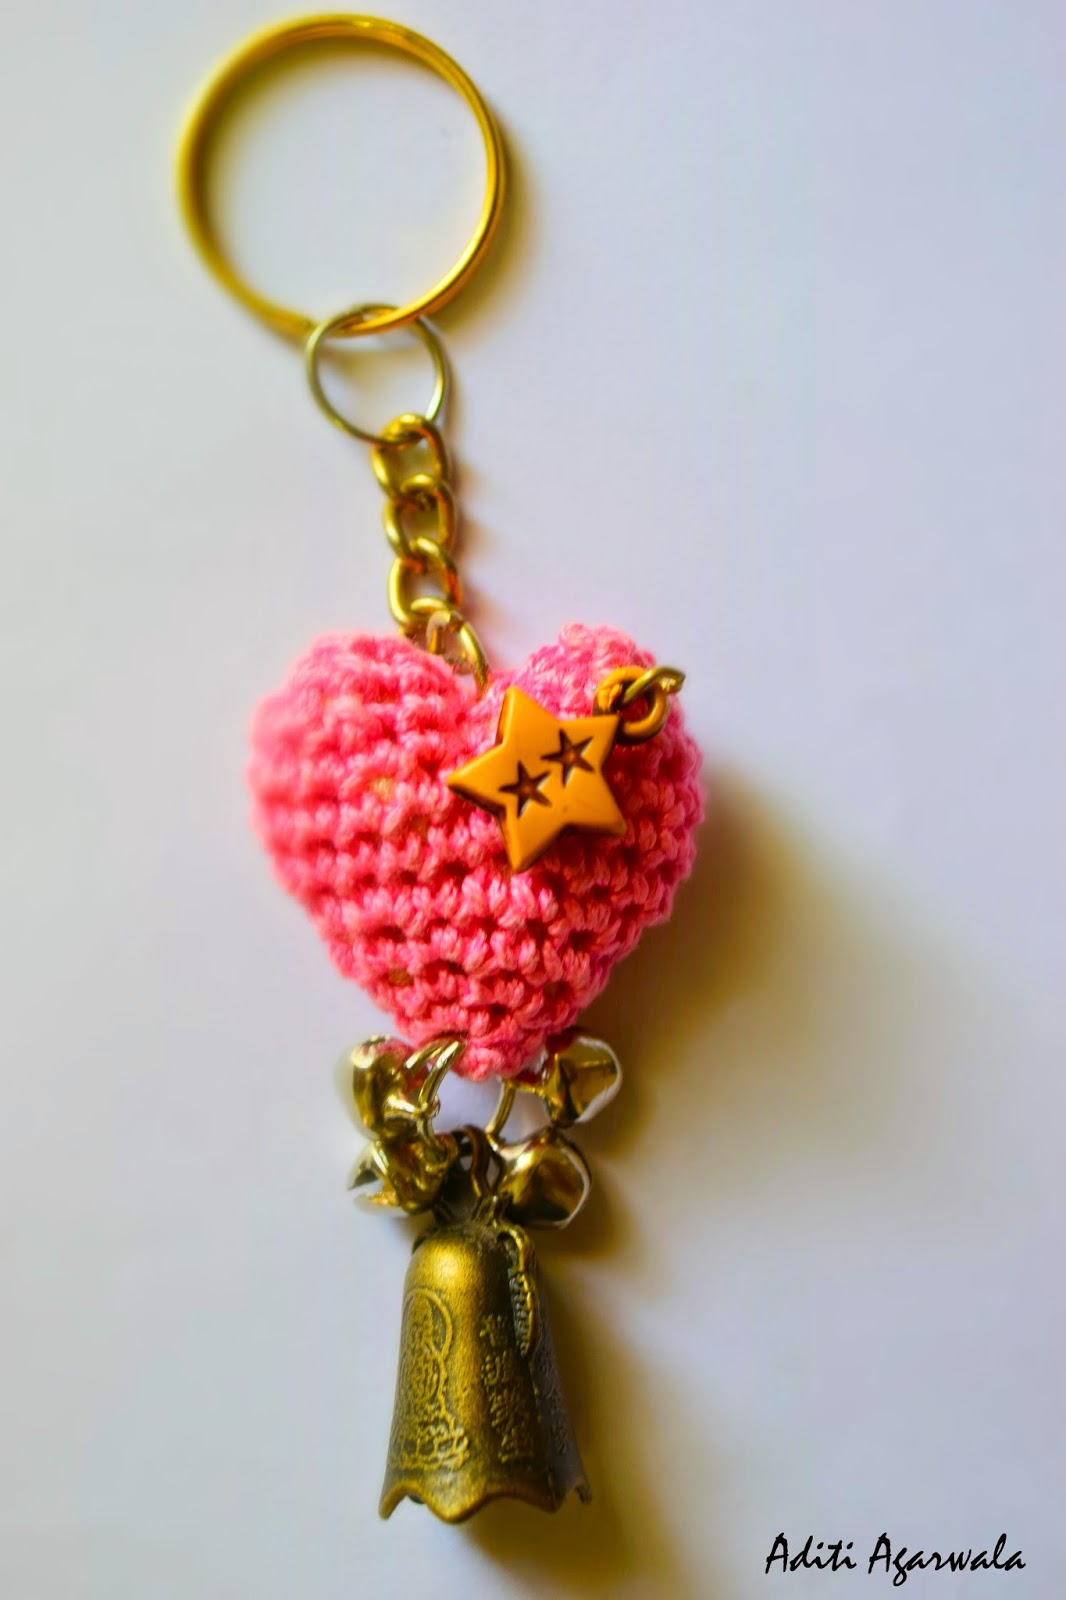 Pink colored heart shaped crochet key chain